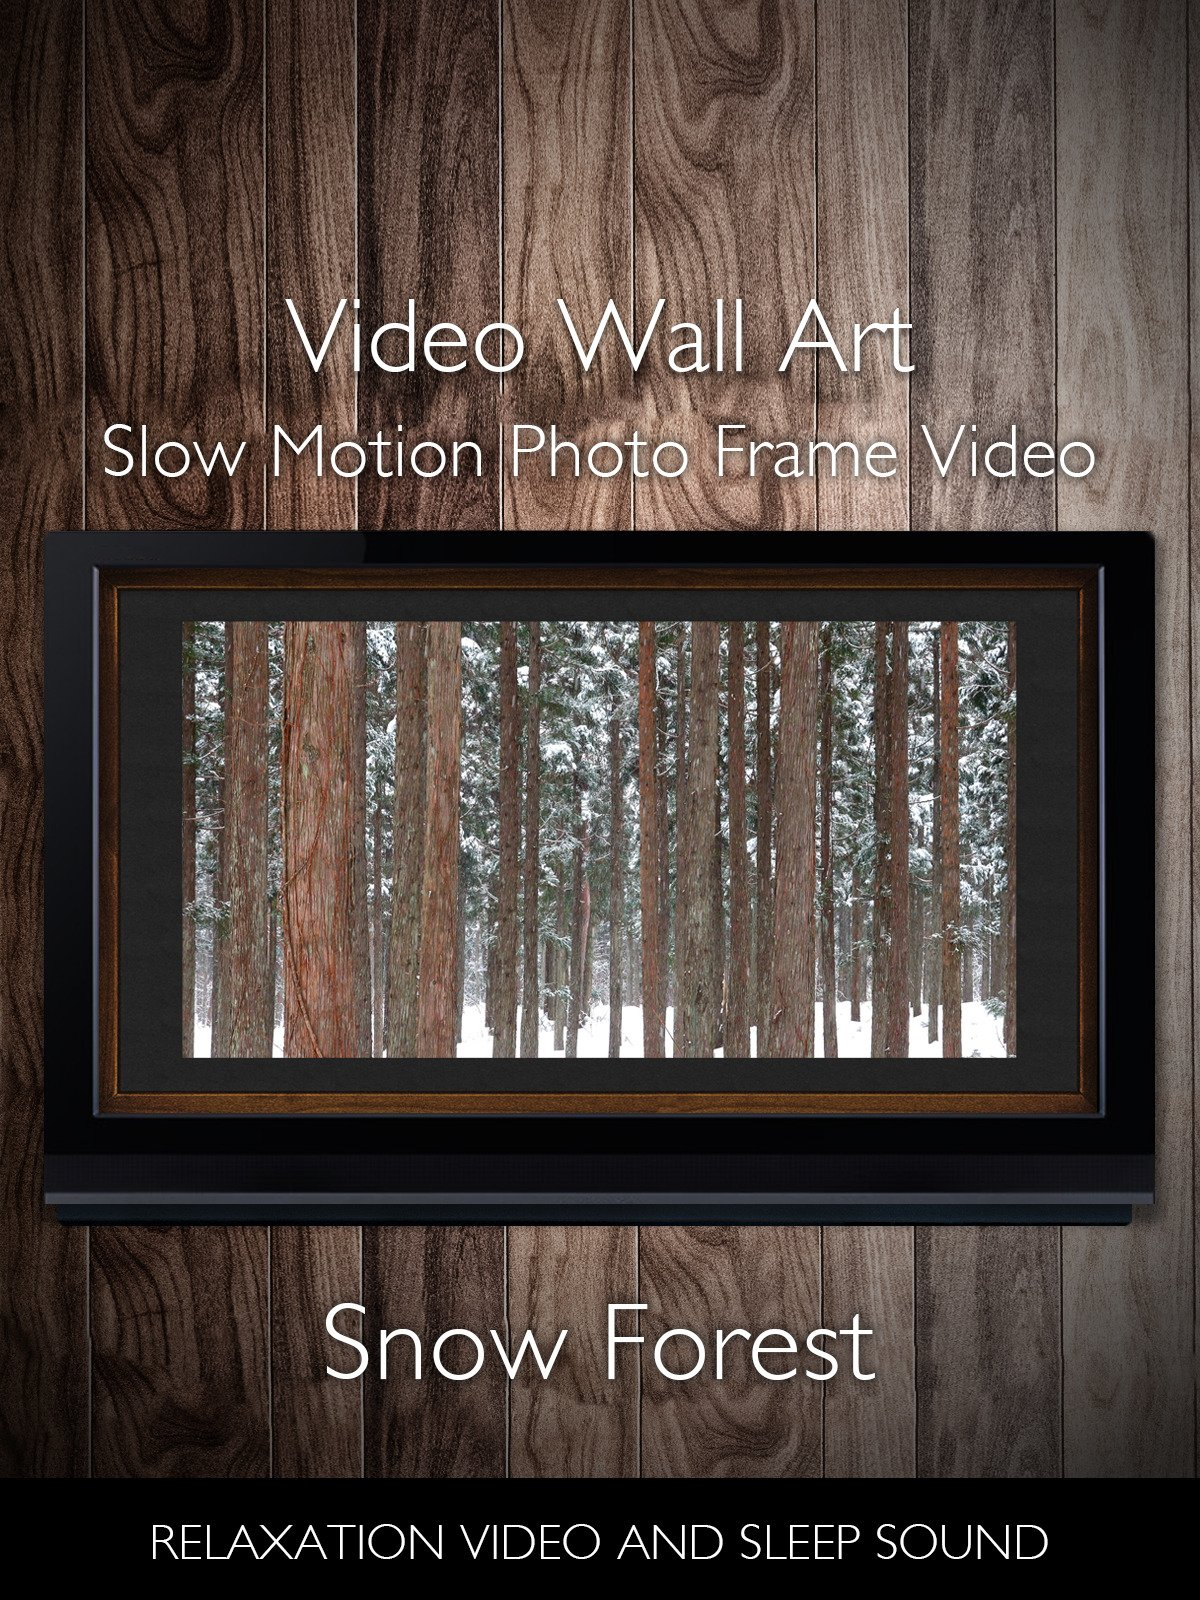 Video Wall Art Slow Motion Snow Folest Photo Frame Video Relaxation Video and Sleep Sound